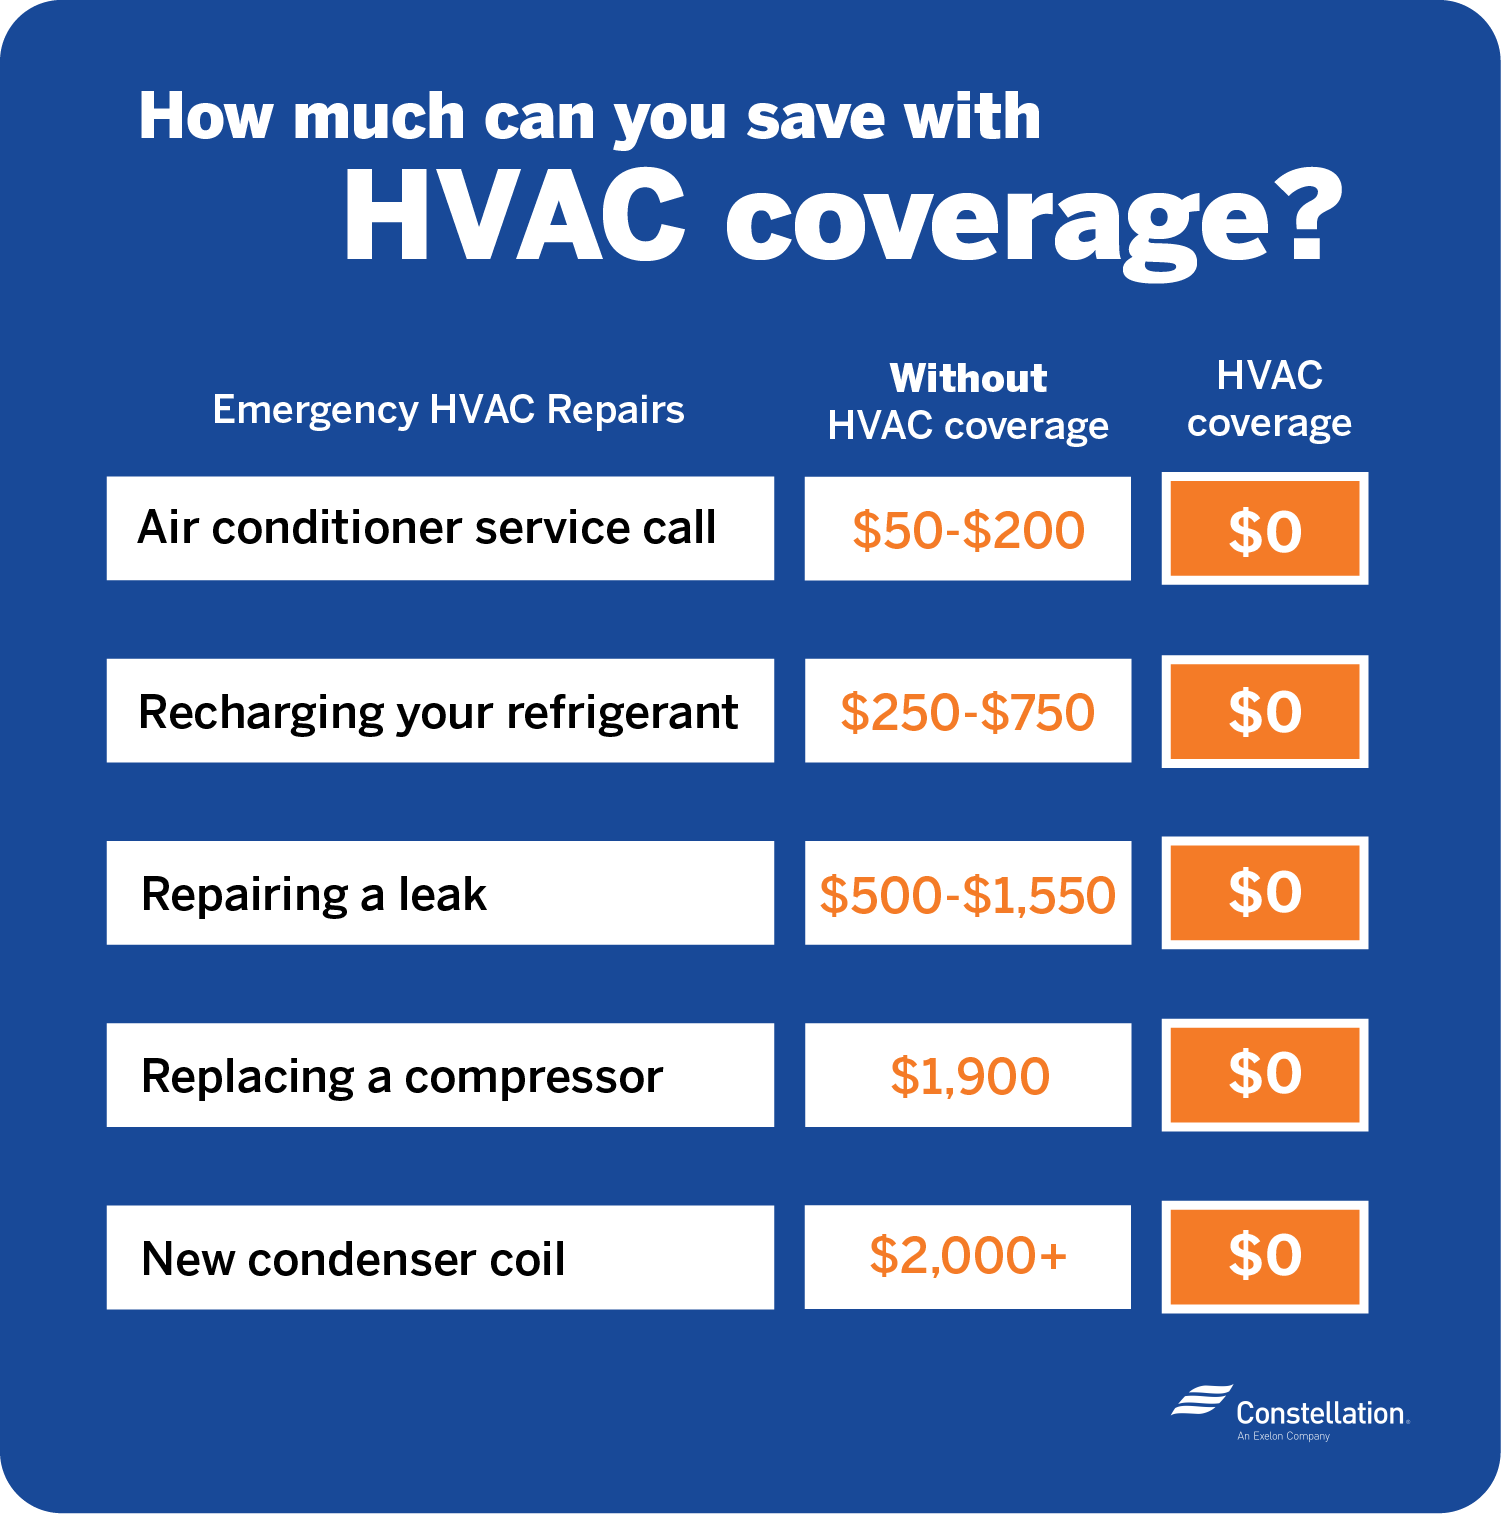 How much can you save with HVAC coverage